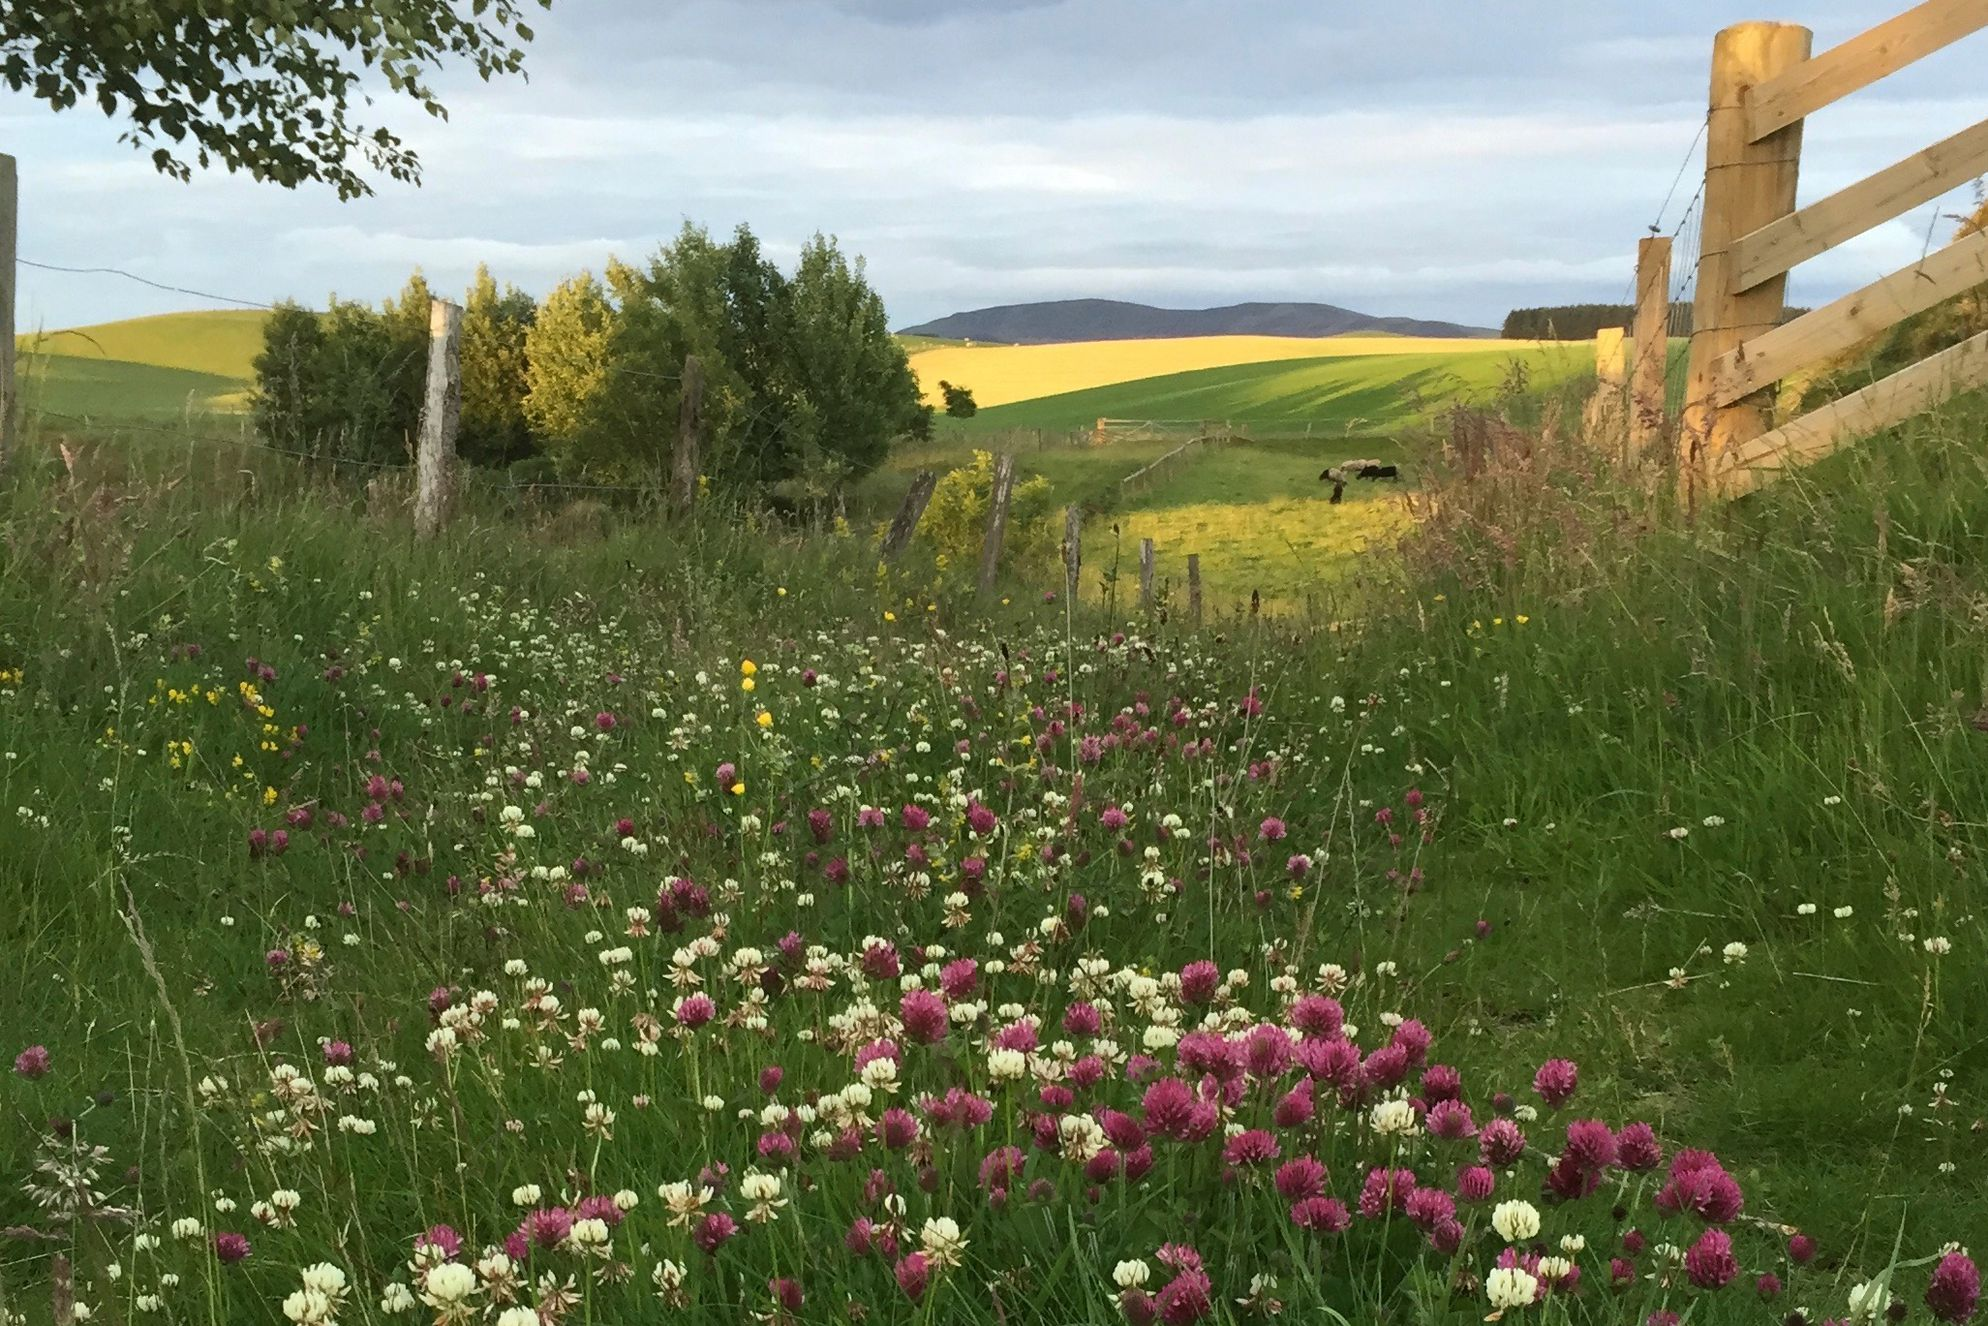 Footpath leading to surrounding countryside at The Lint Mill in Lanarkshire, with a view of rolling hills